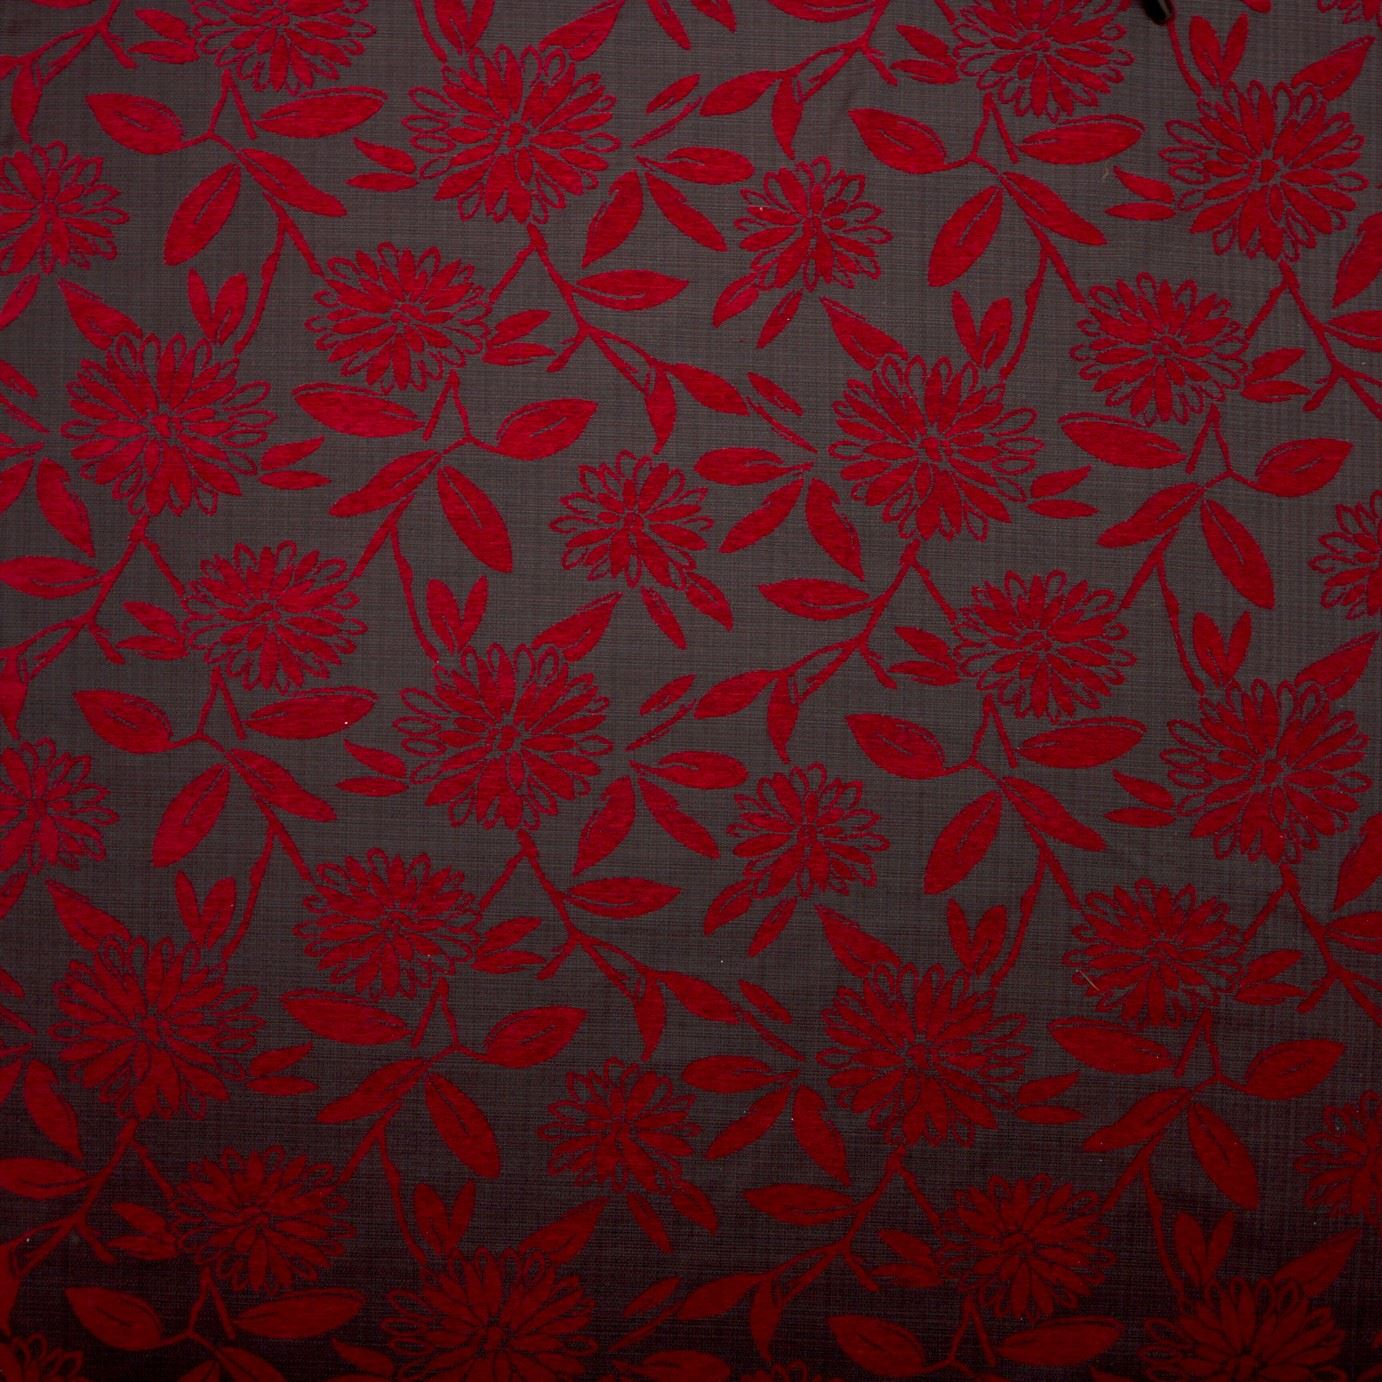 designer upholstery fabric and luxury fabric for curtains